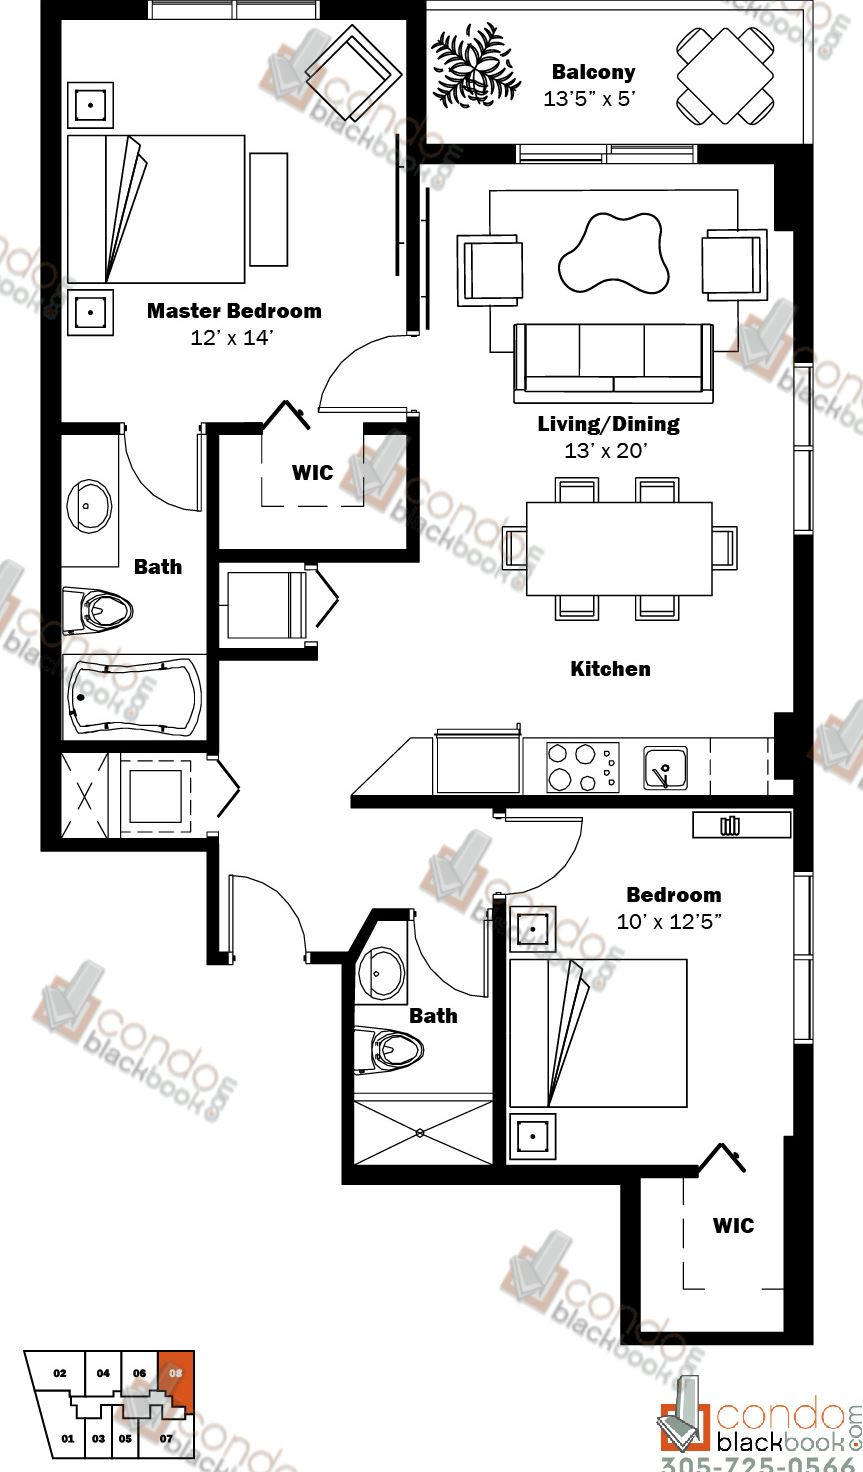 Floor plan for My Brickell Brickell Miami, model 04, line 08, 2/2 bedrooms, 955 sq ft